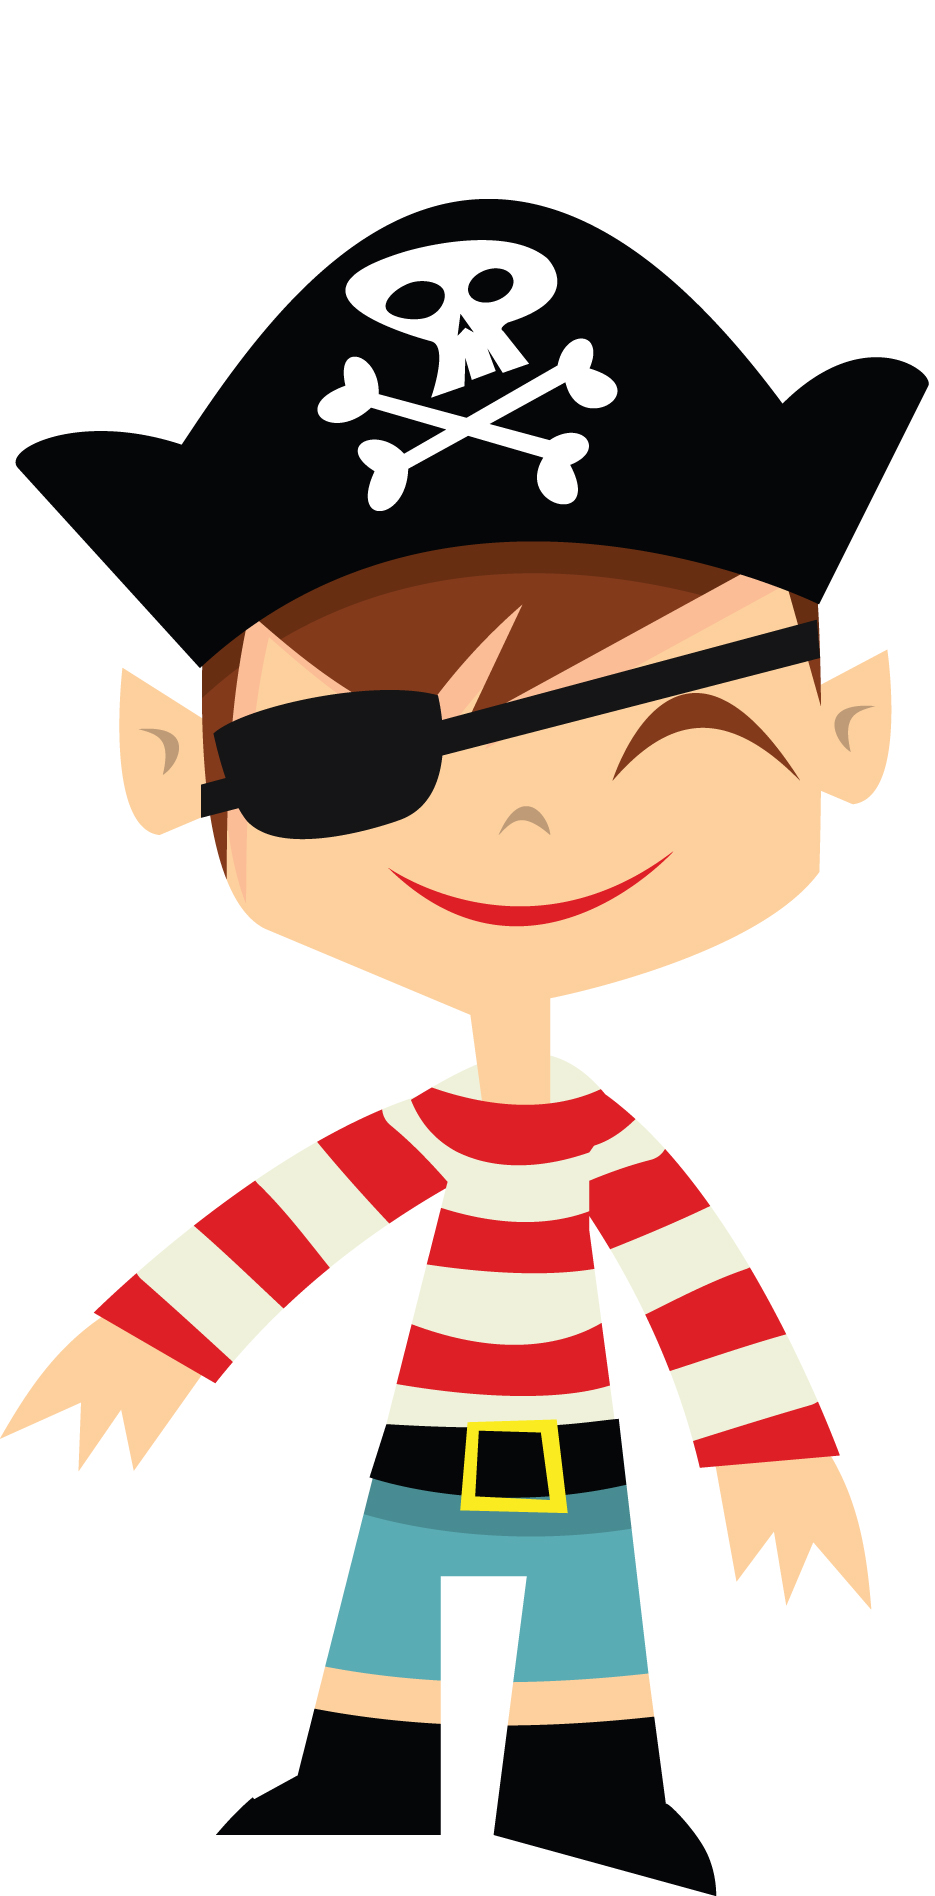 Jake The Pirate Clipart at GetDrawings.com | Free for ...